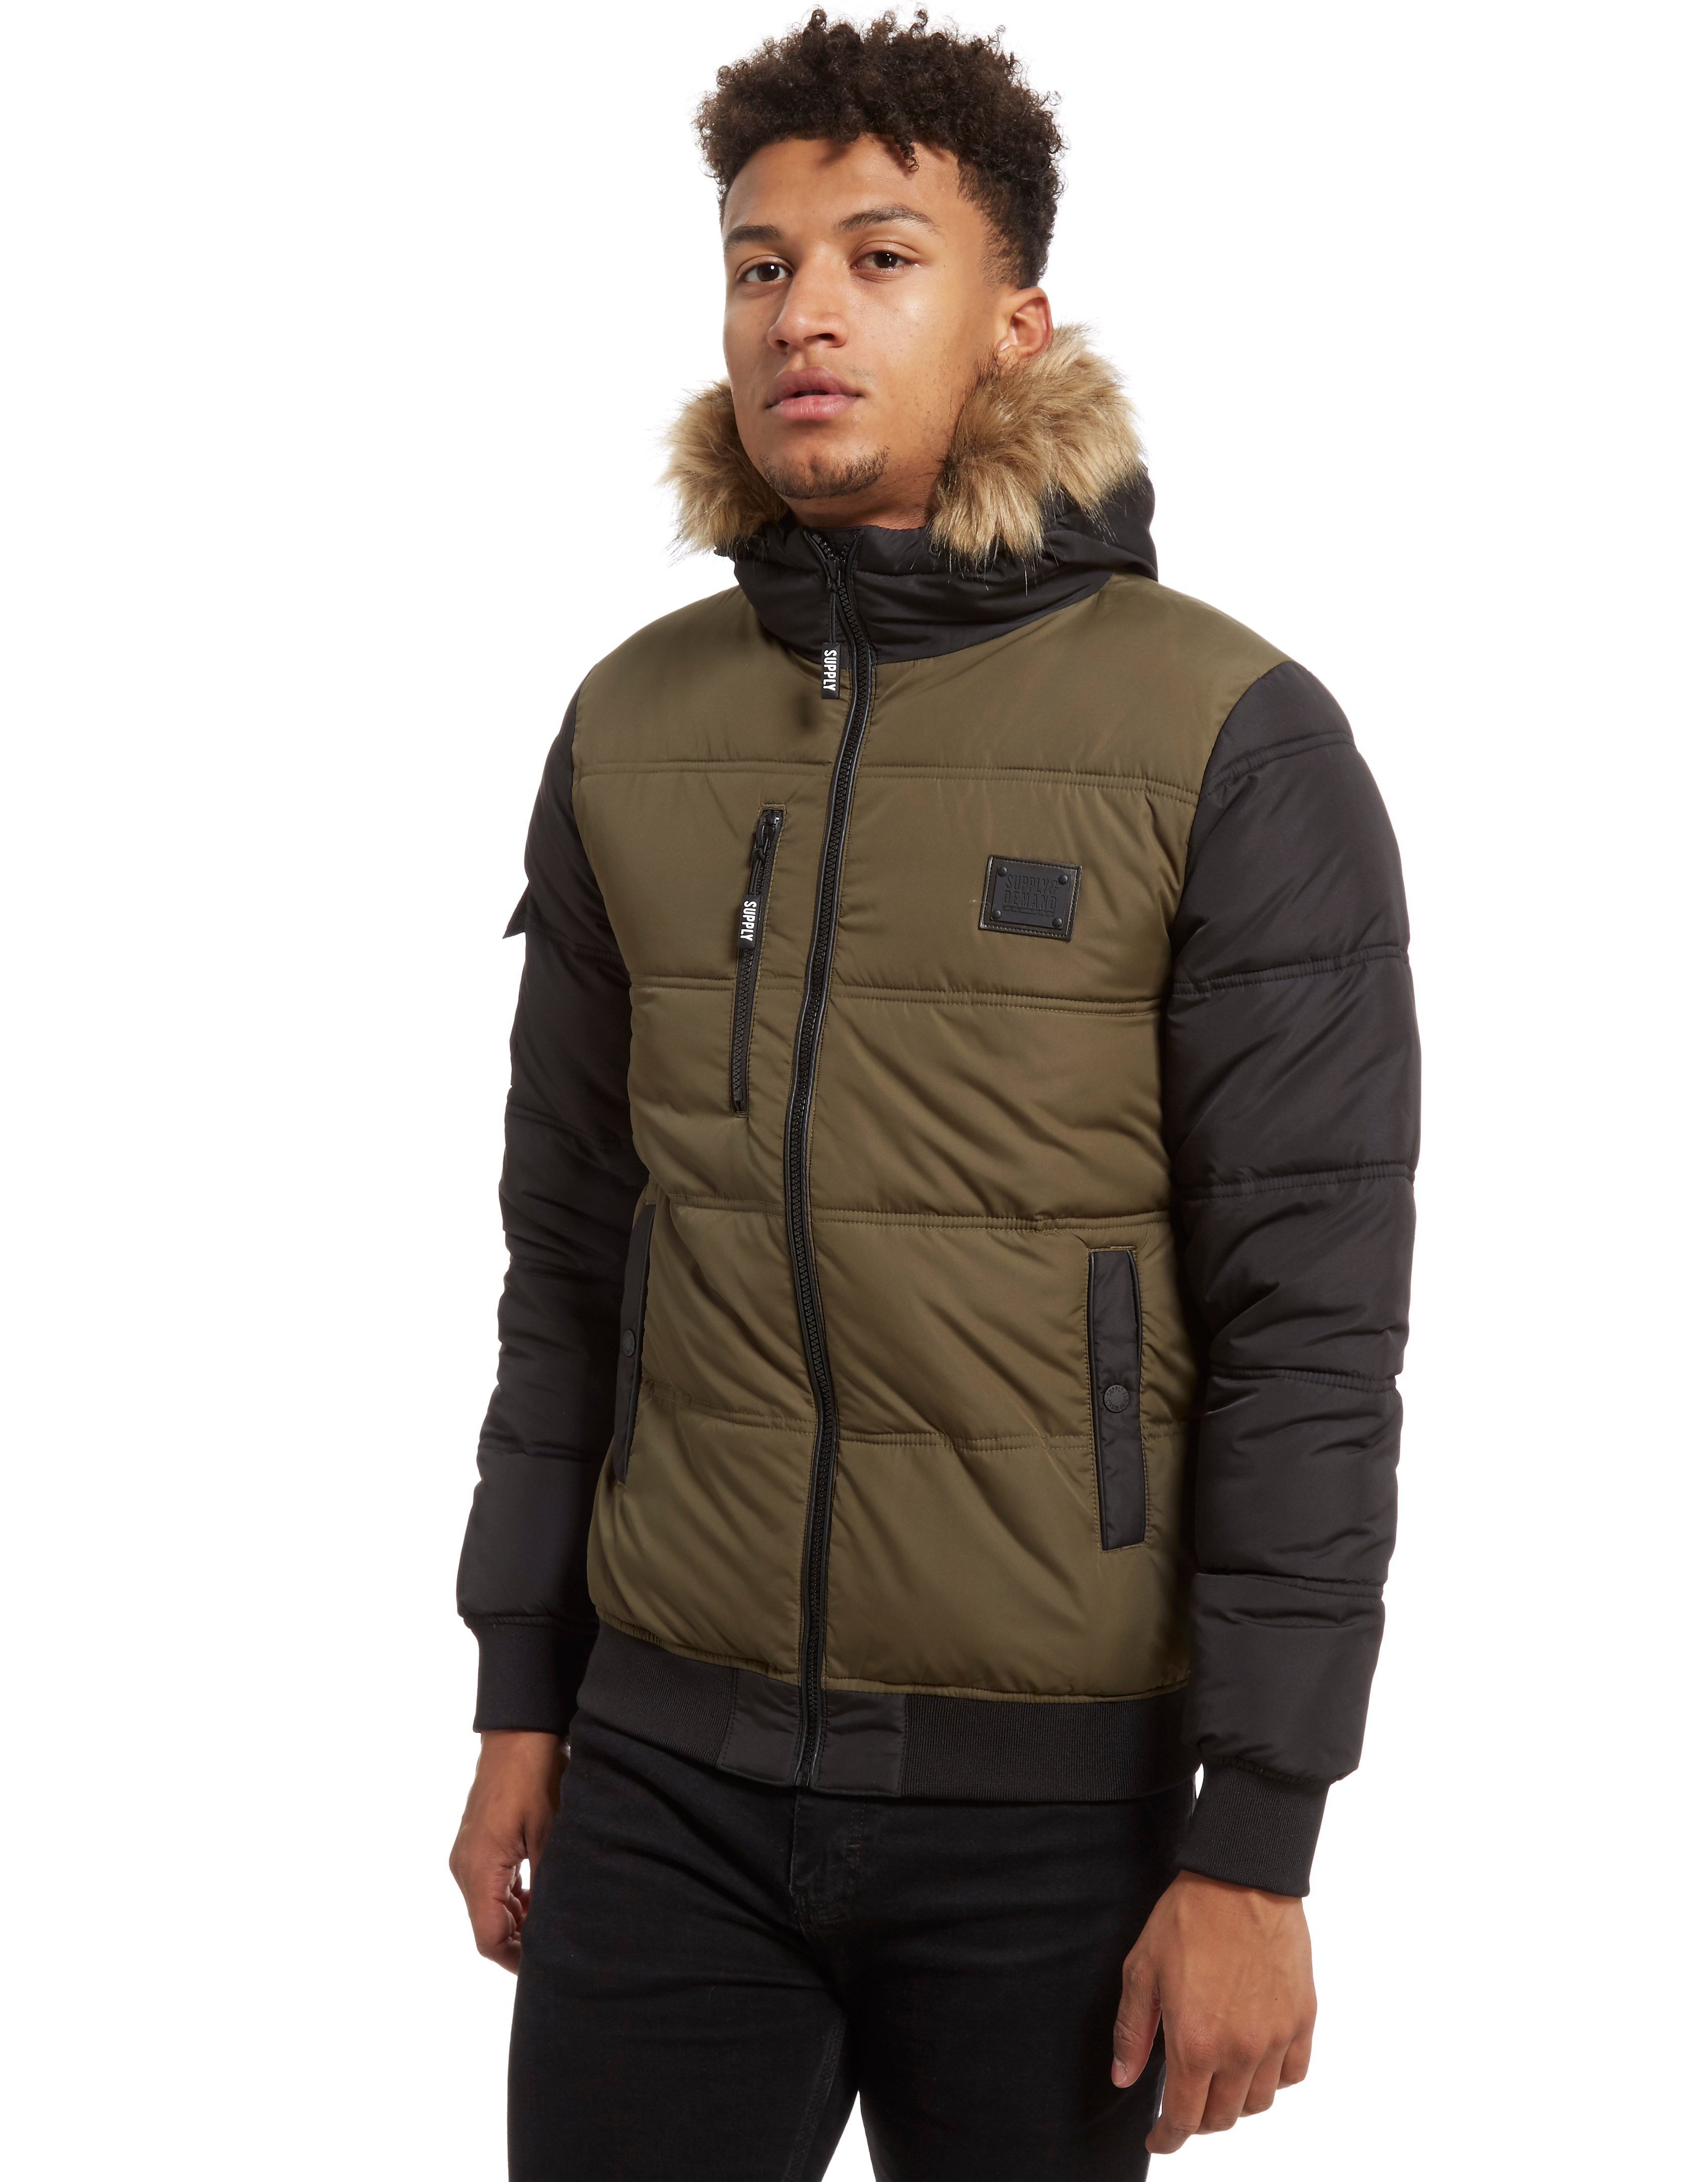 Supply & Demand Splinter Jacket